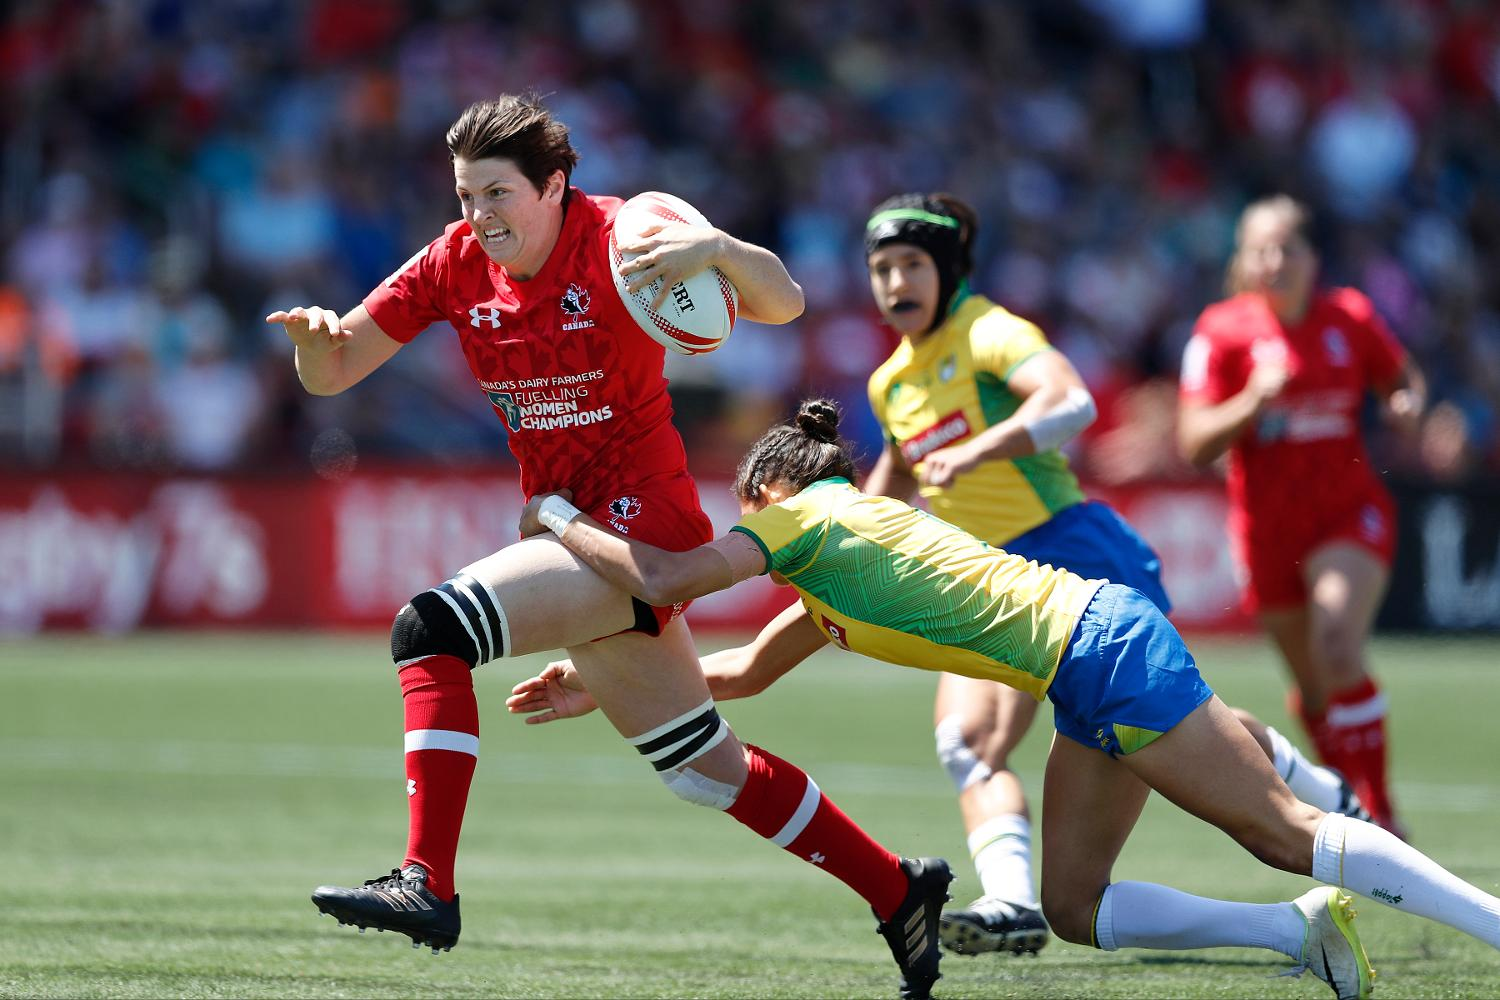 HSBC World Rugby Women's Sevens Series Langford